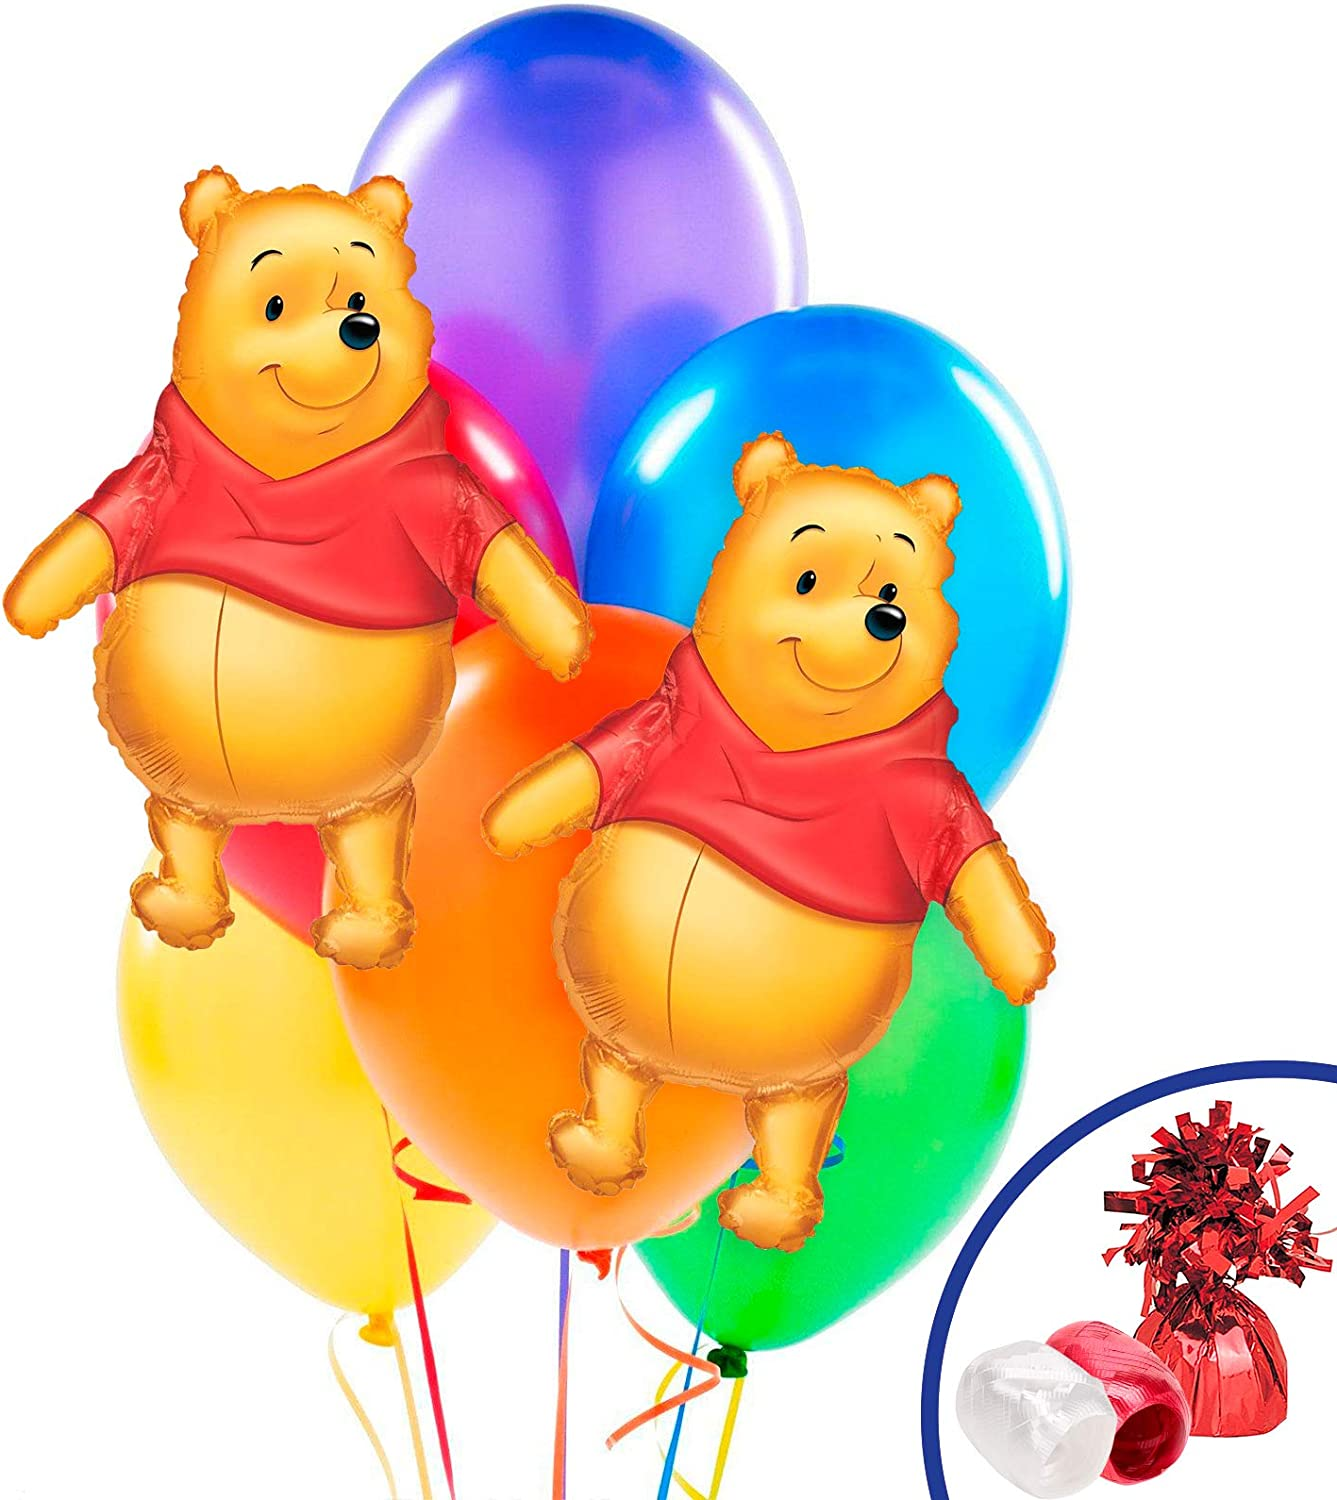 Mayflower Products Winnie The Pooh 3 pc Jumbo Foil Balloon Party Supplies and...